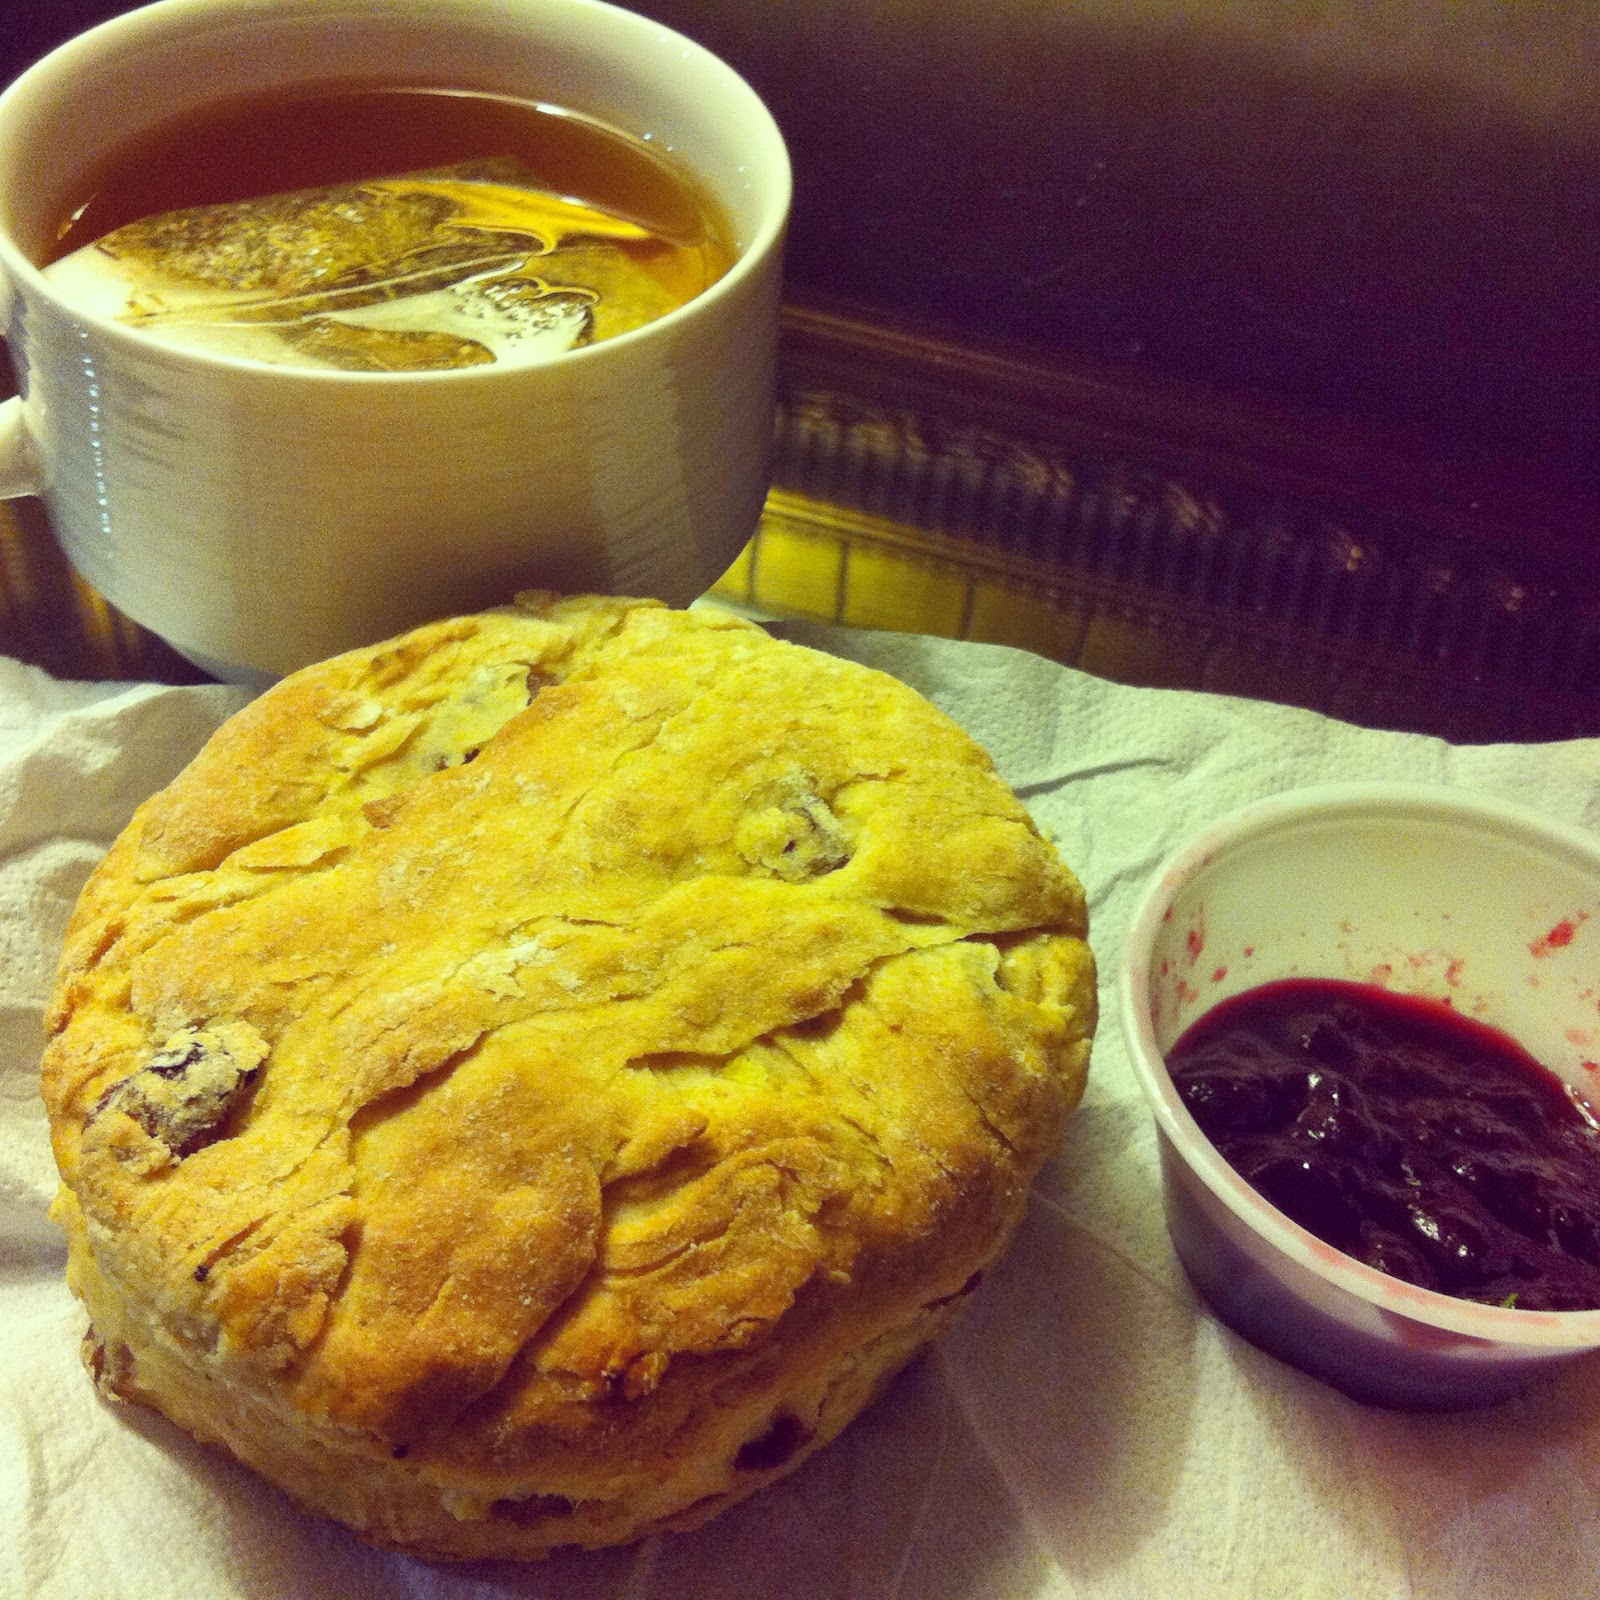 Tea and Vegan Scone with Jam from Cornucopia Dublin, Ireland